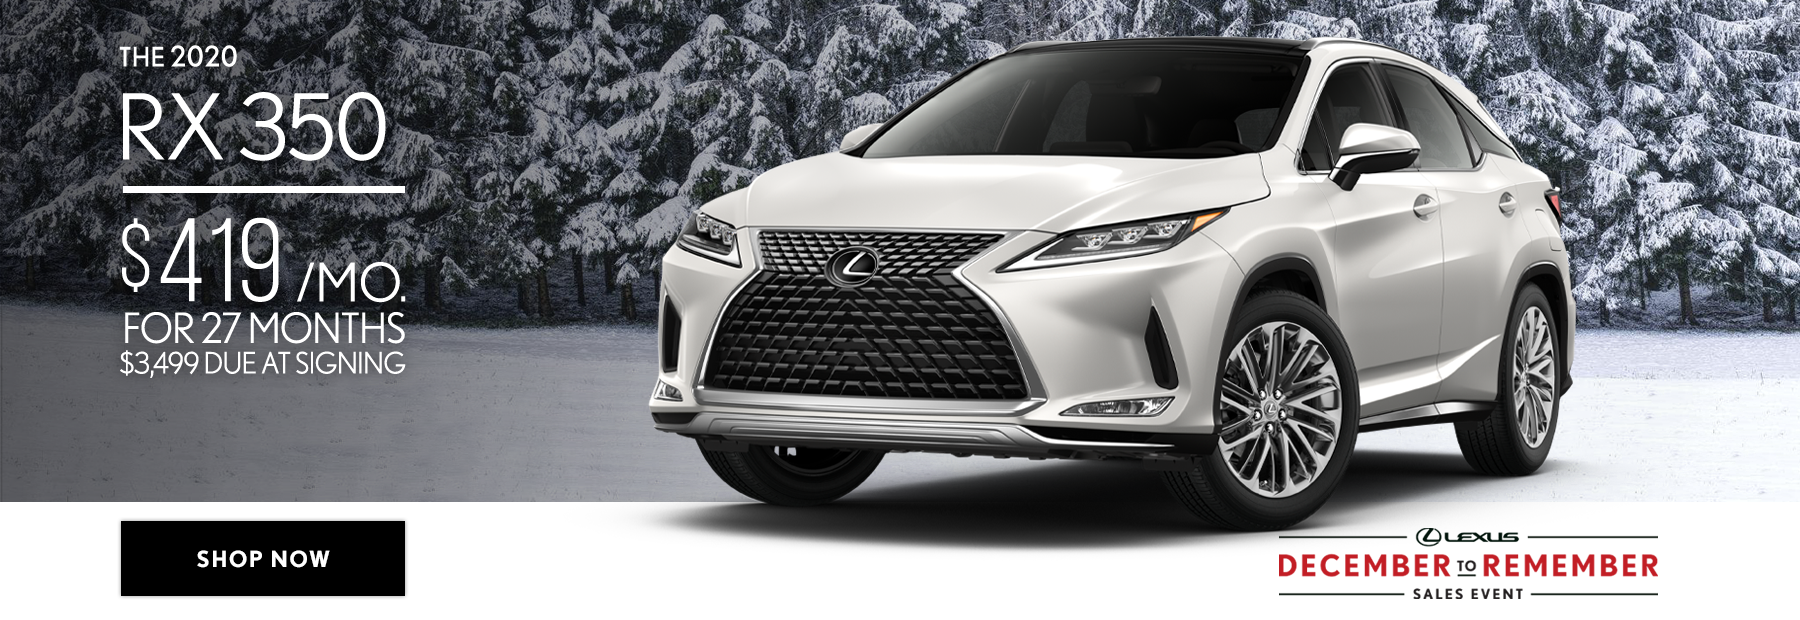 lease-special-new-2020-lexus-rx-350-cincinnati-ohio